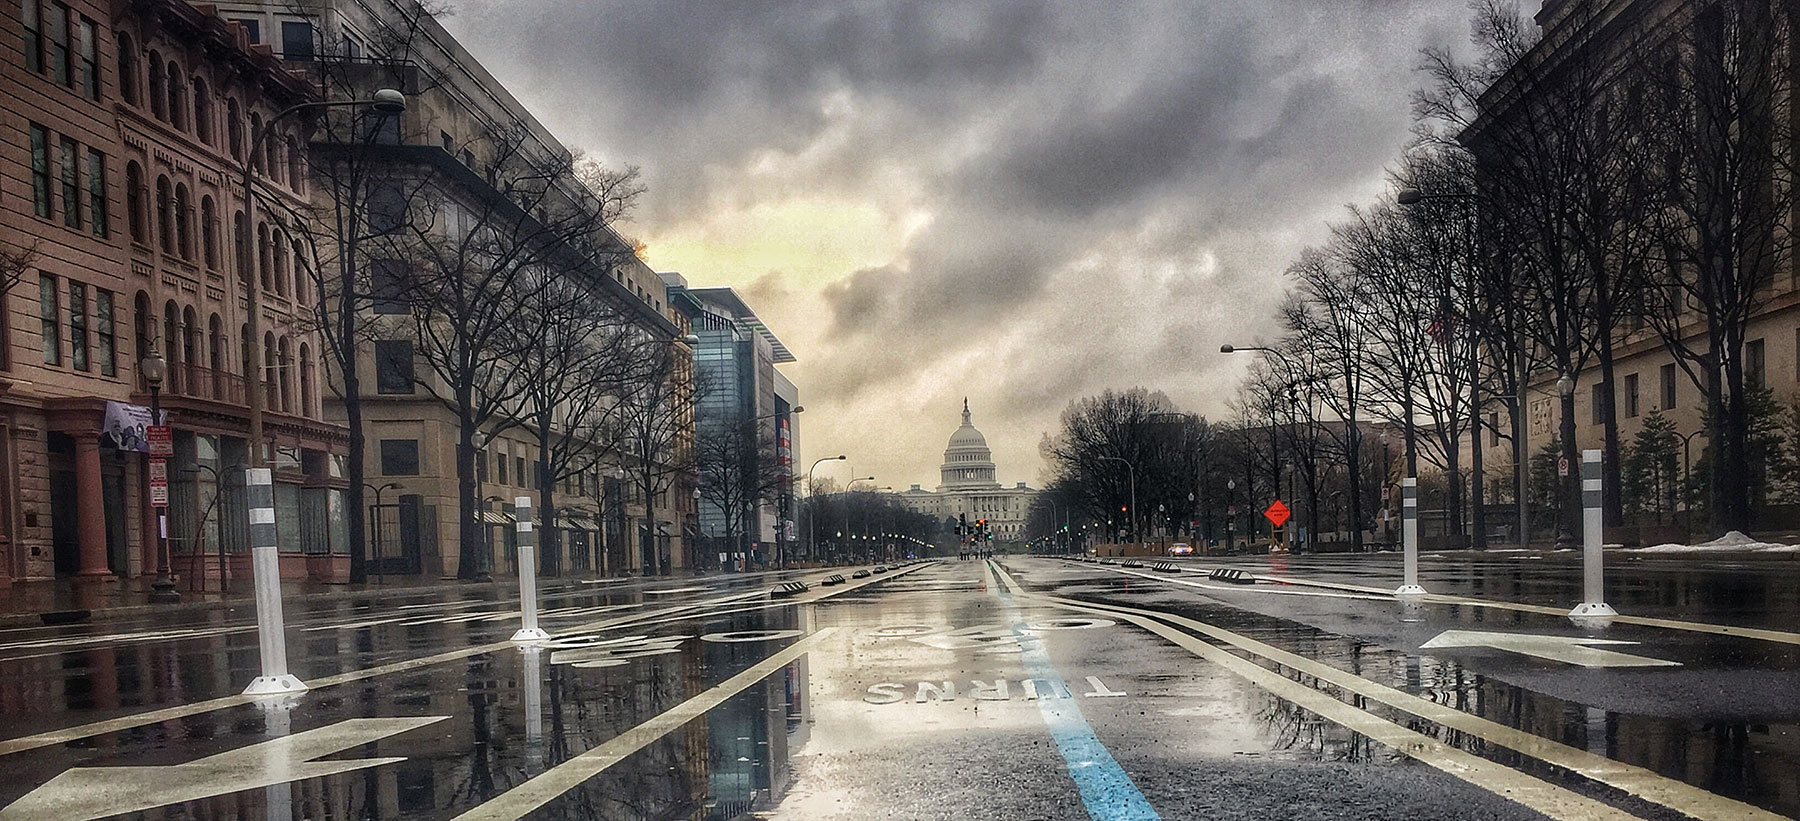 Gloomy photo of the U.S. Capitol in the rain at night